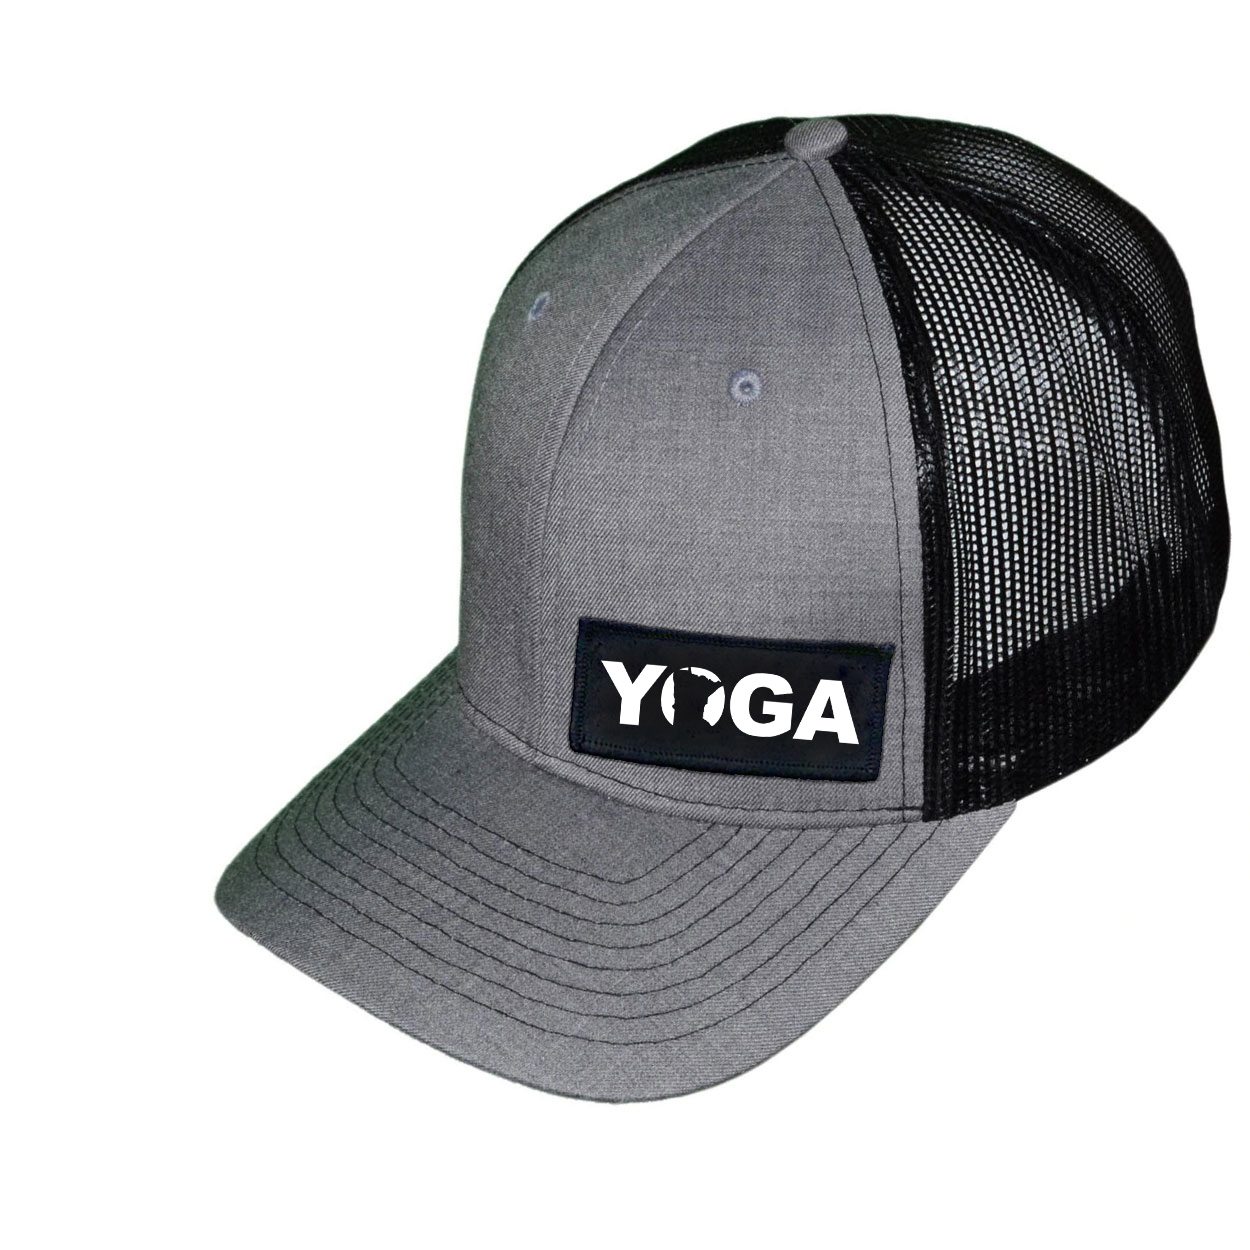 Yoga Minnesota Night Out Woven Patch Snapback Trucker Hat Heather Gray/Black (White Logo)